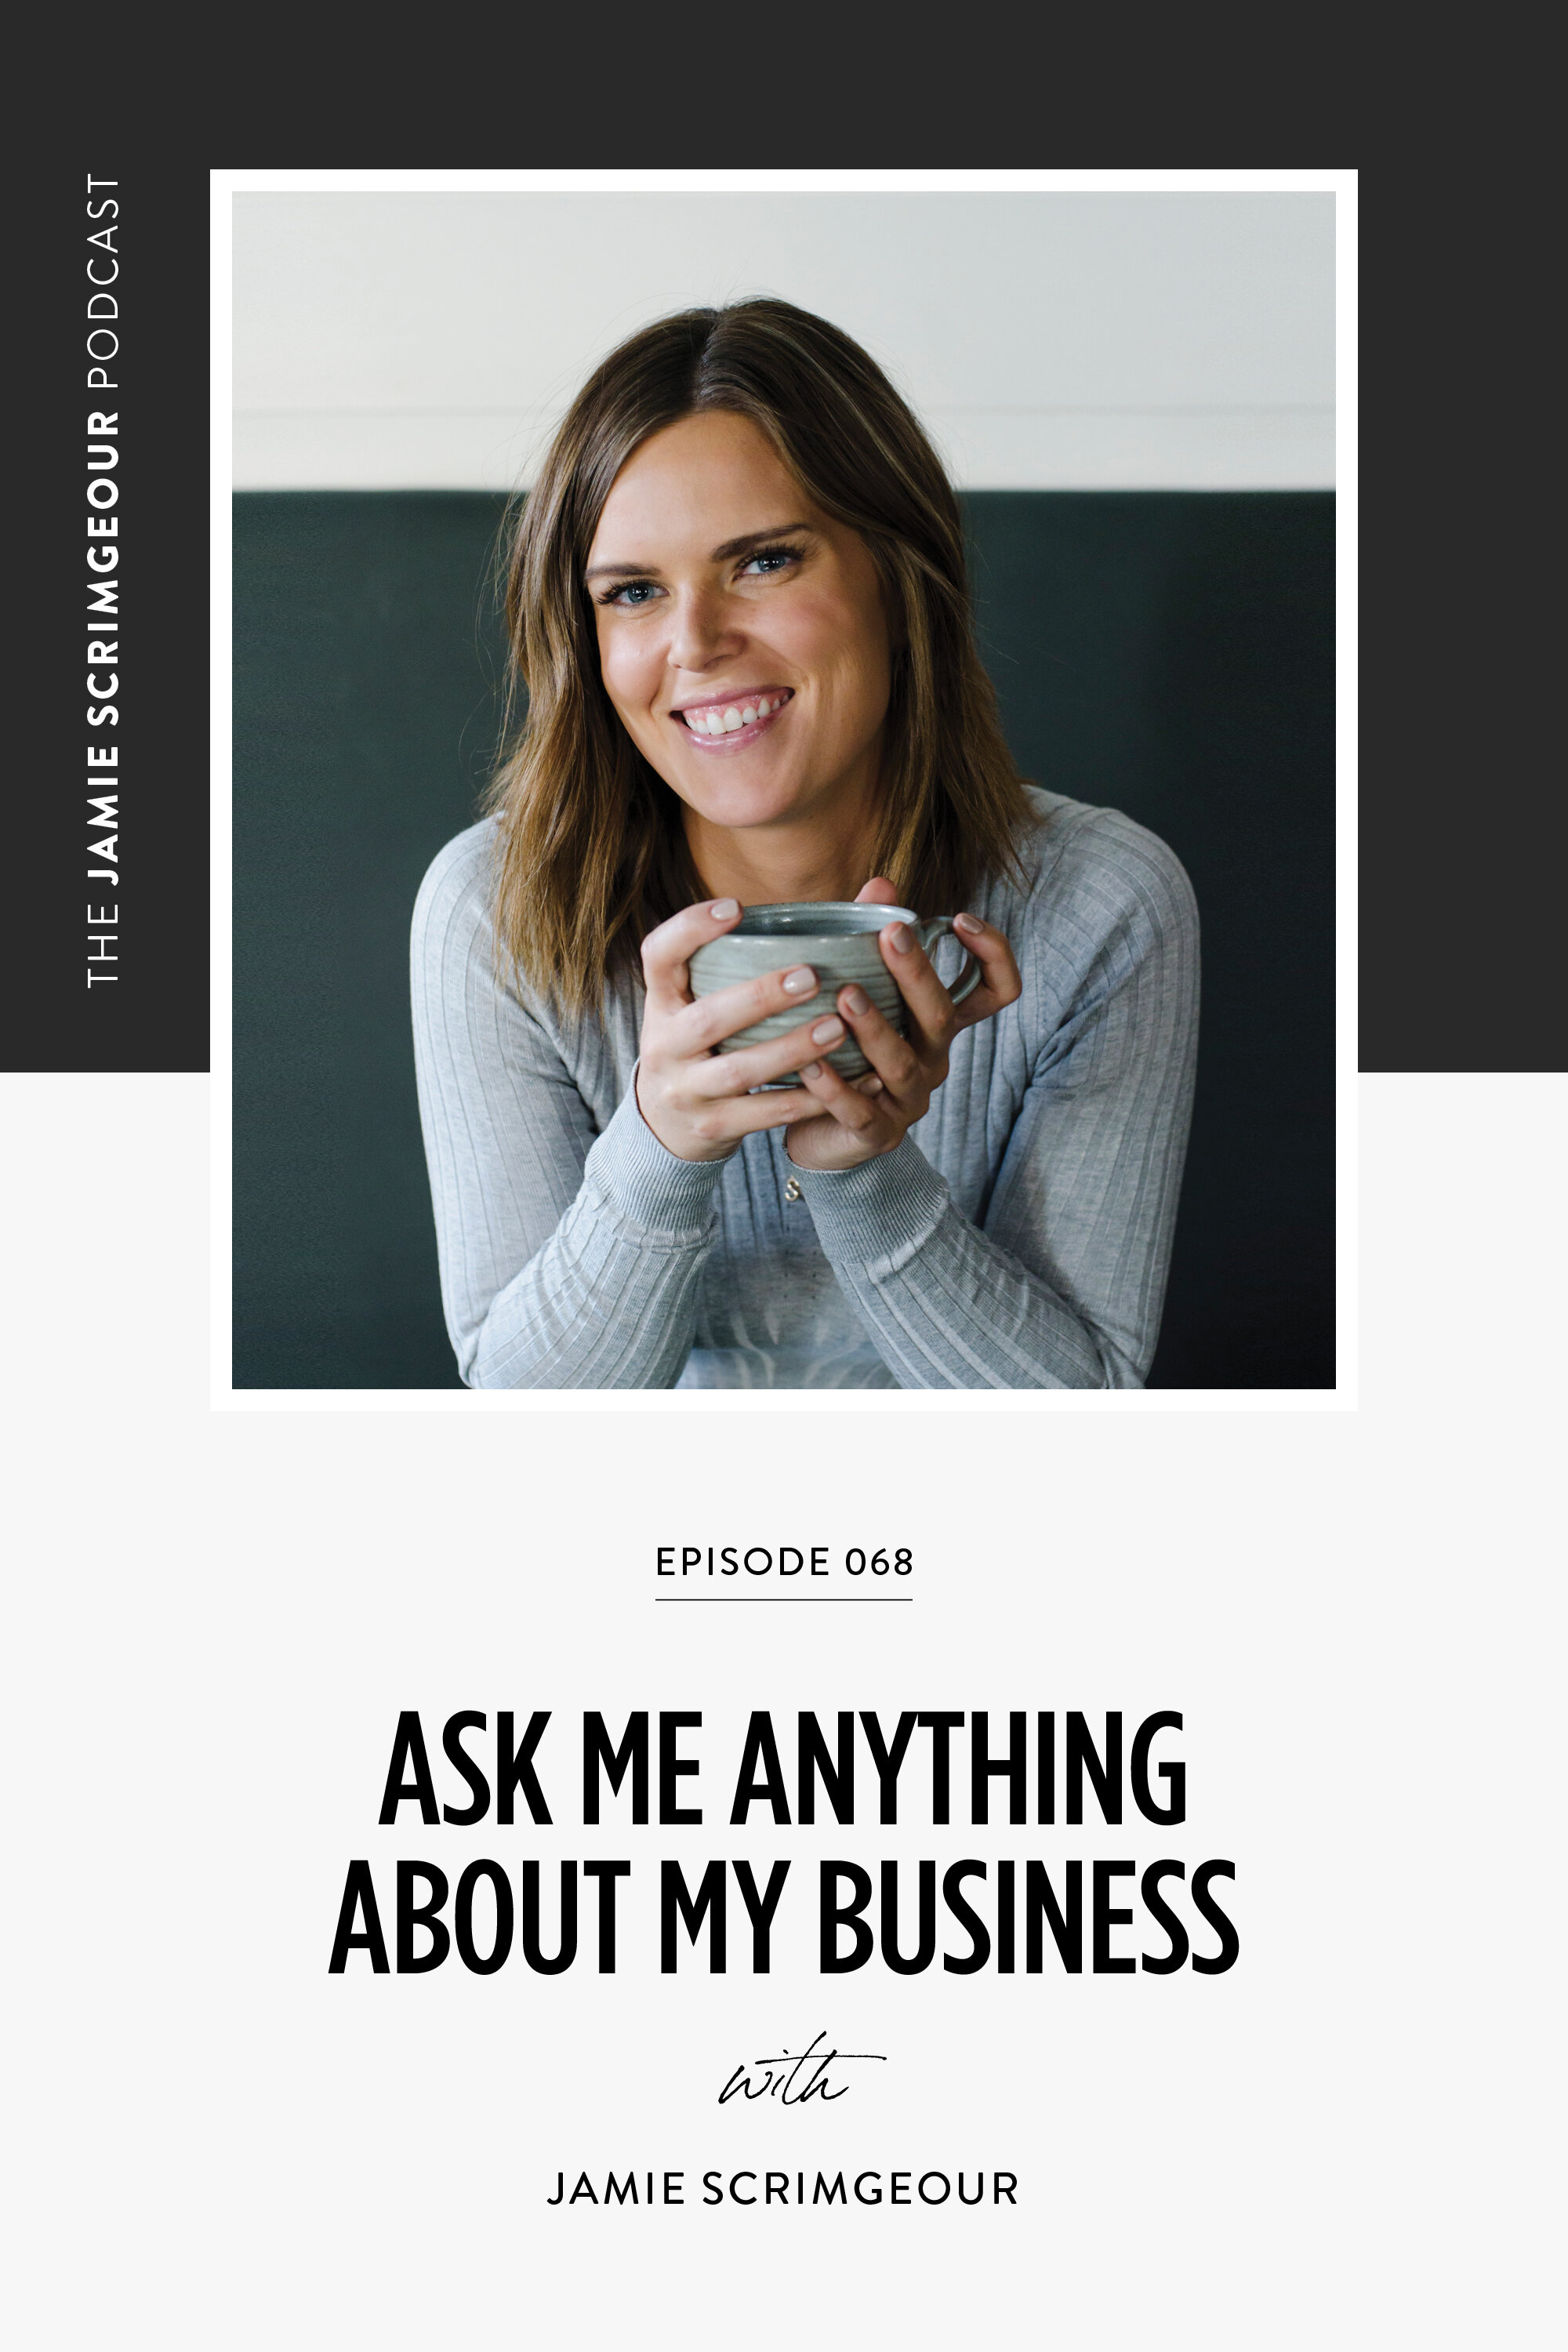 The Jamie Scrimgeour Podcast Episode 068 - Ask Me Anything About My Business